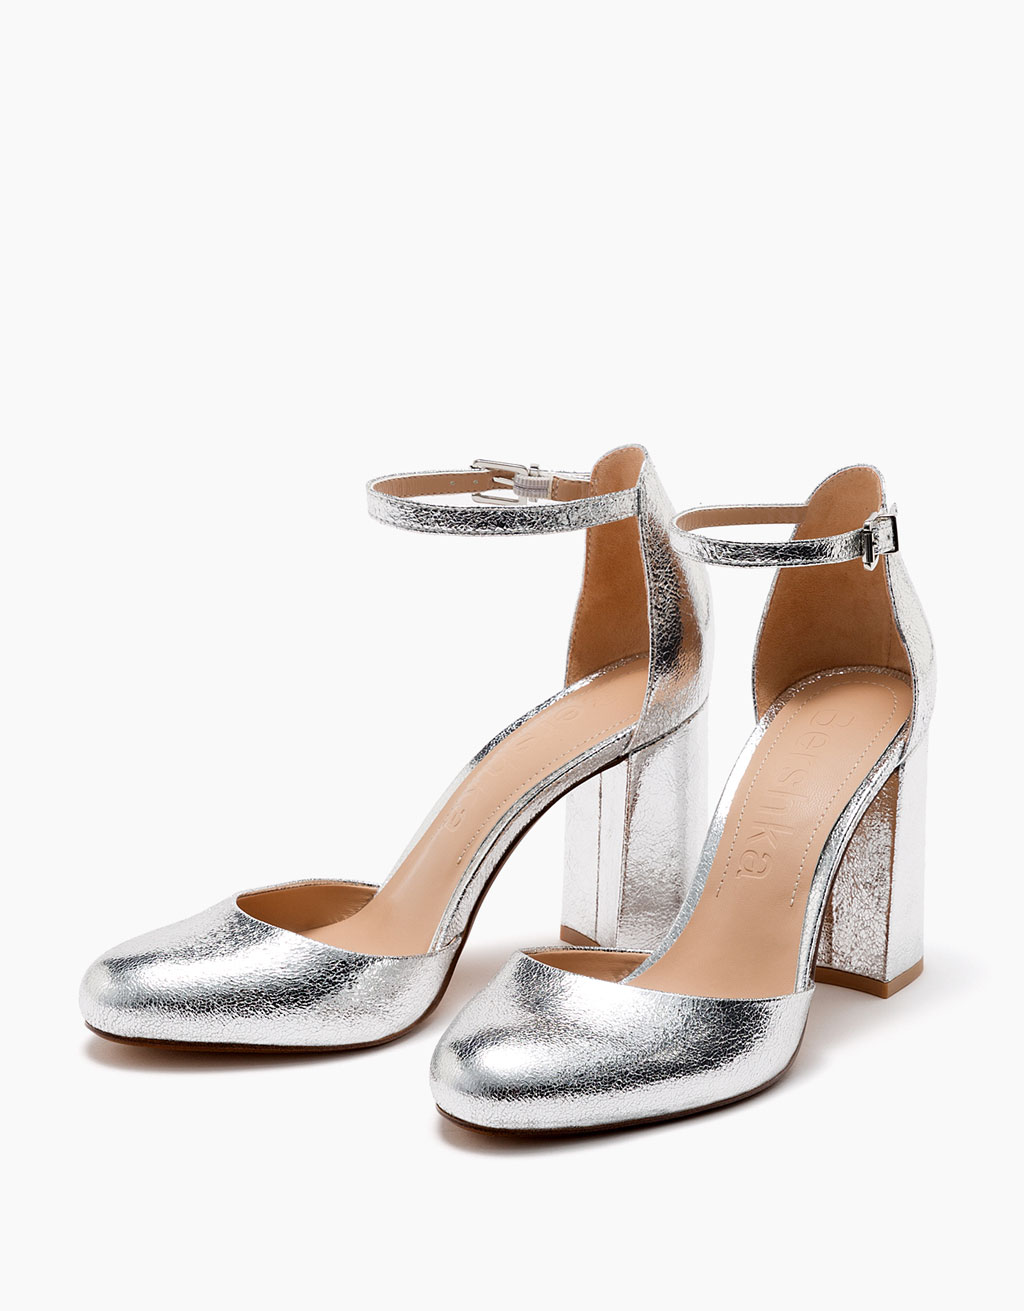 Metallic block-heeled d'orsay shoes